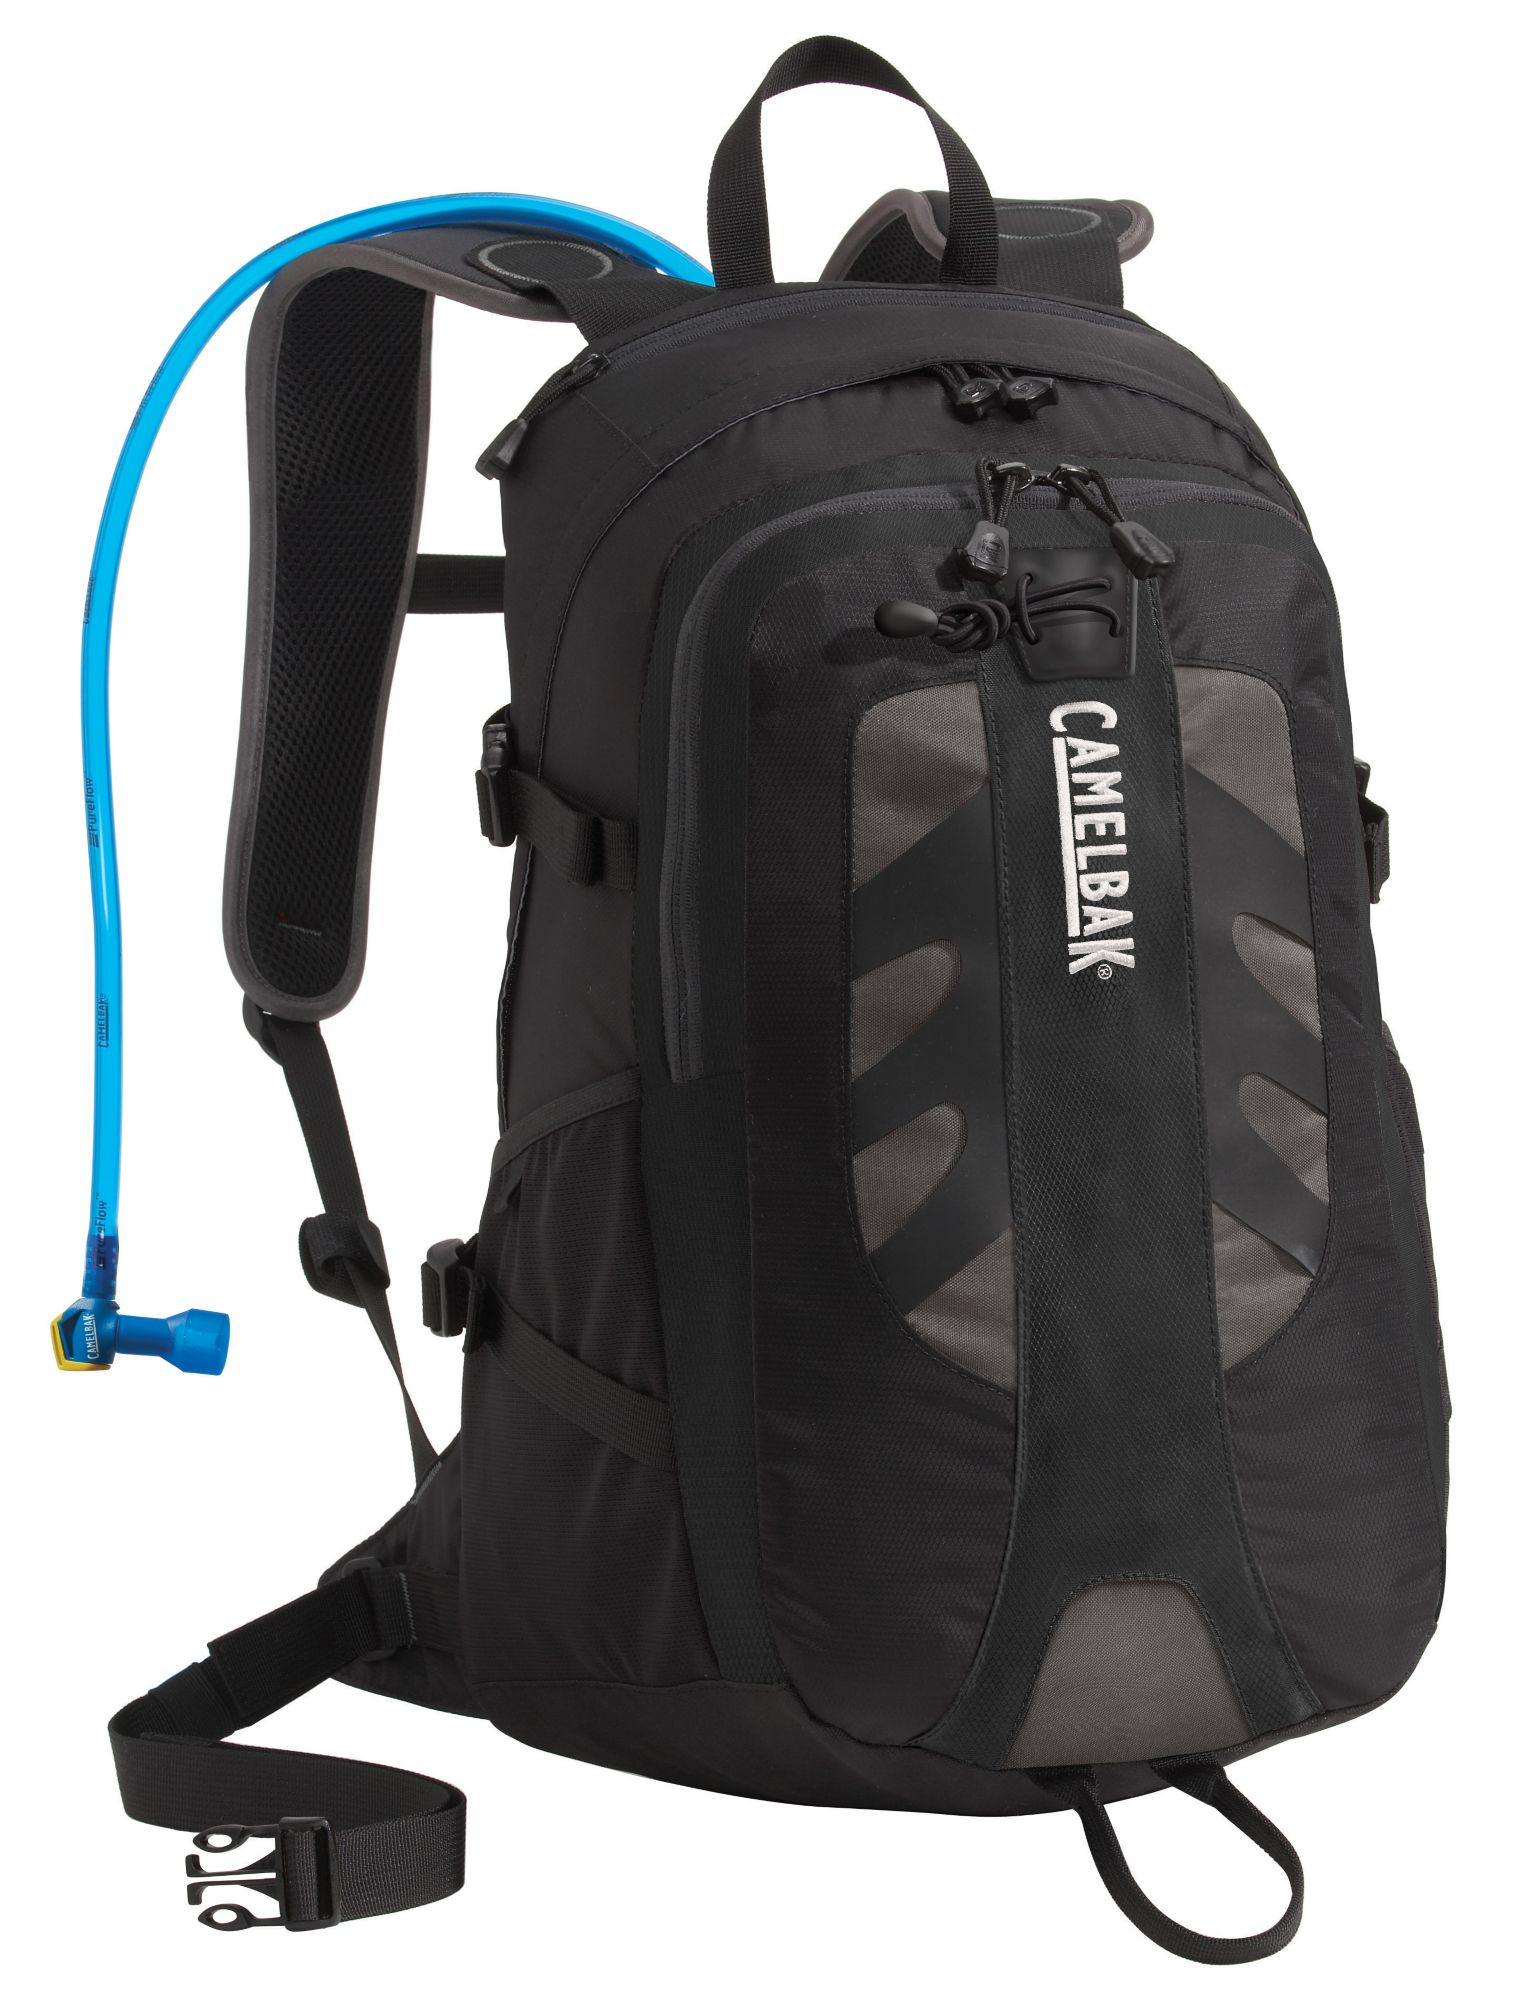 CamelBak Rim Runner 22L Hydration Backpack| DICK'S Sporting Goods